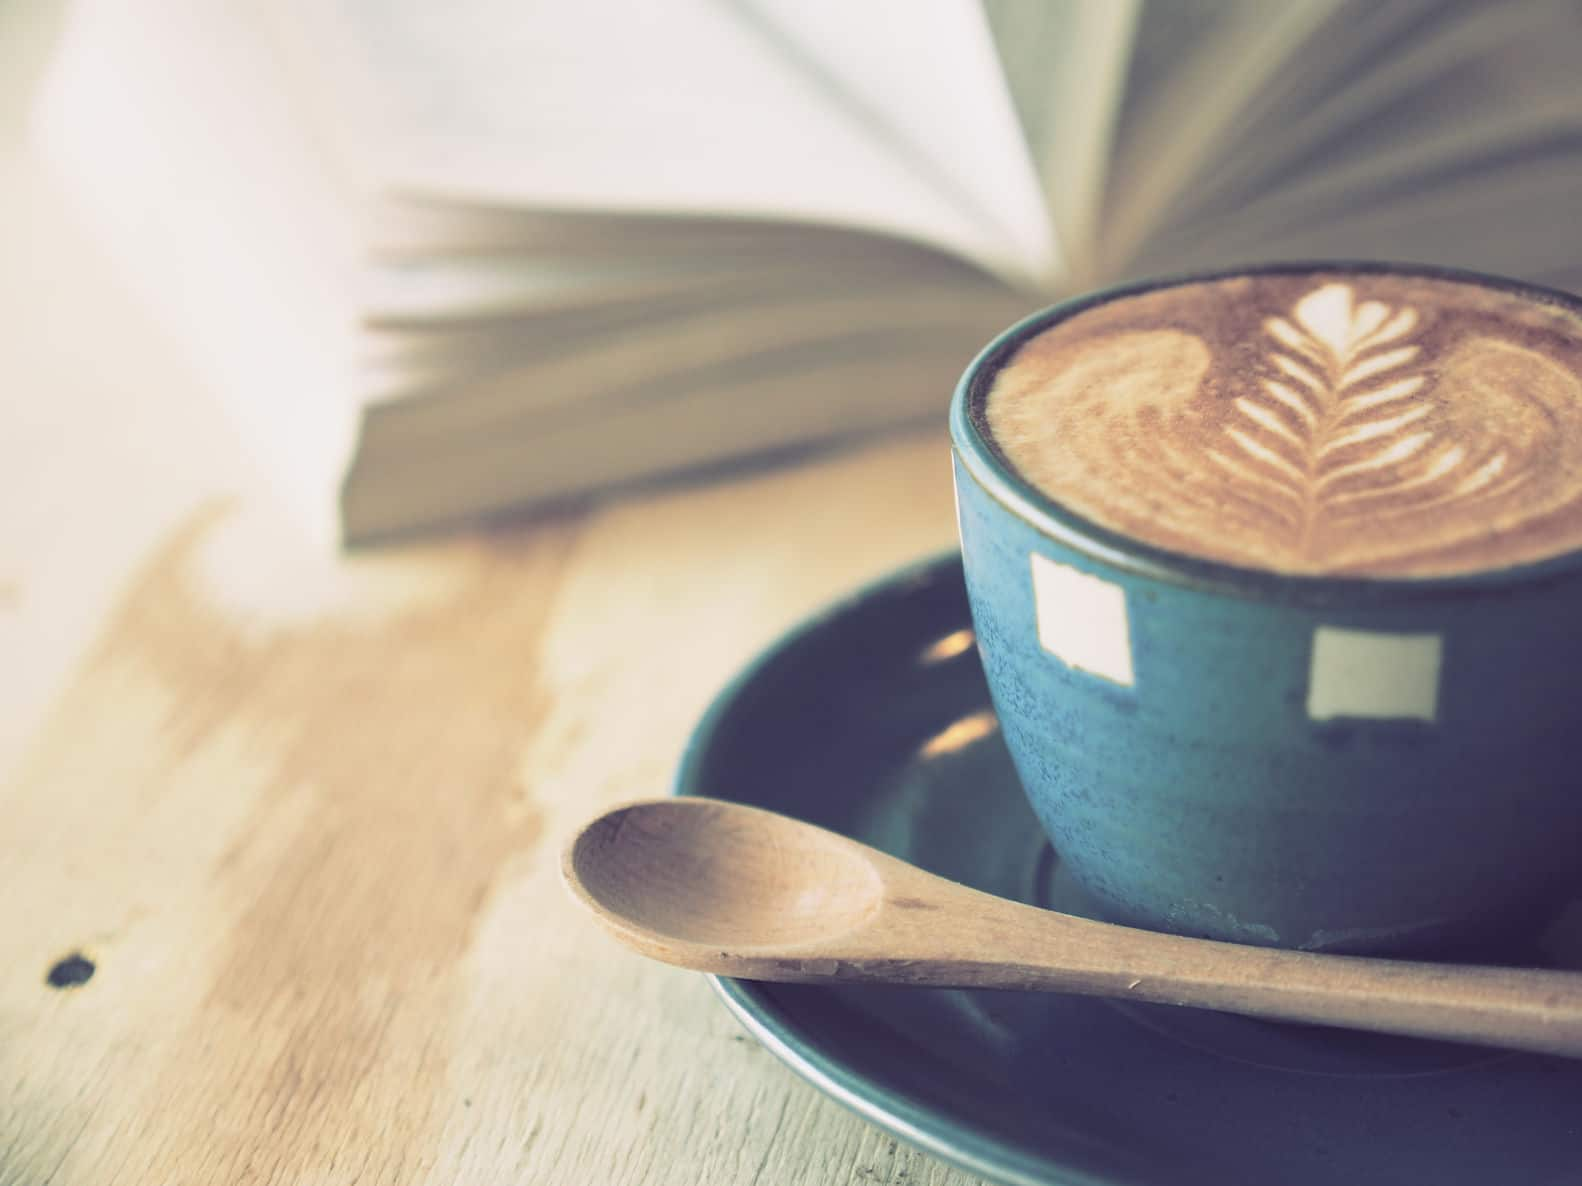 Books and coffee go together perfectly. Start a book club with friends for a fun get together